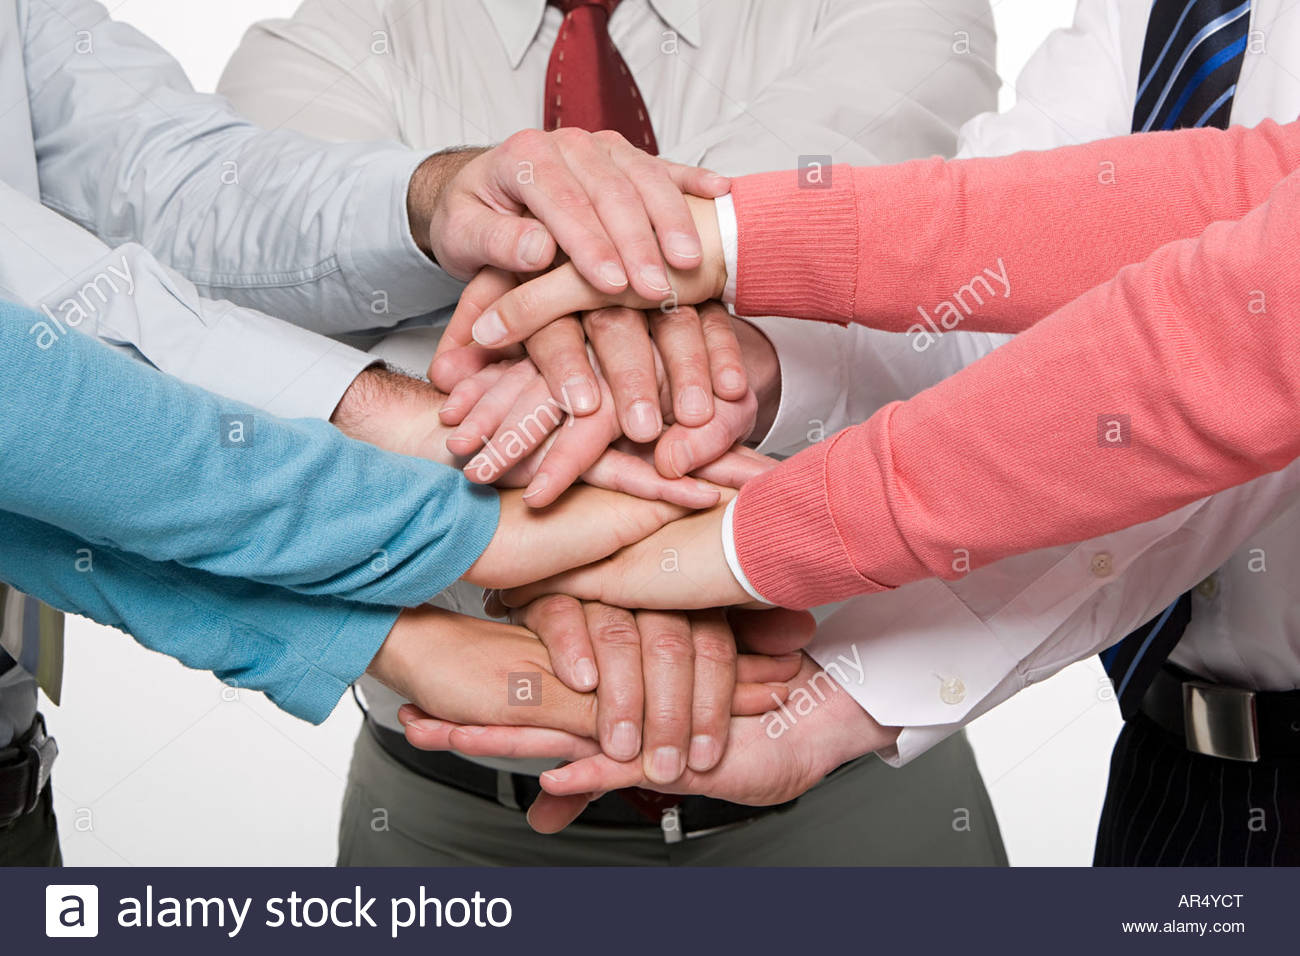 Colleagues hands on top of each others - Stock Image